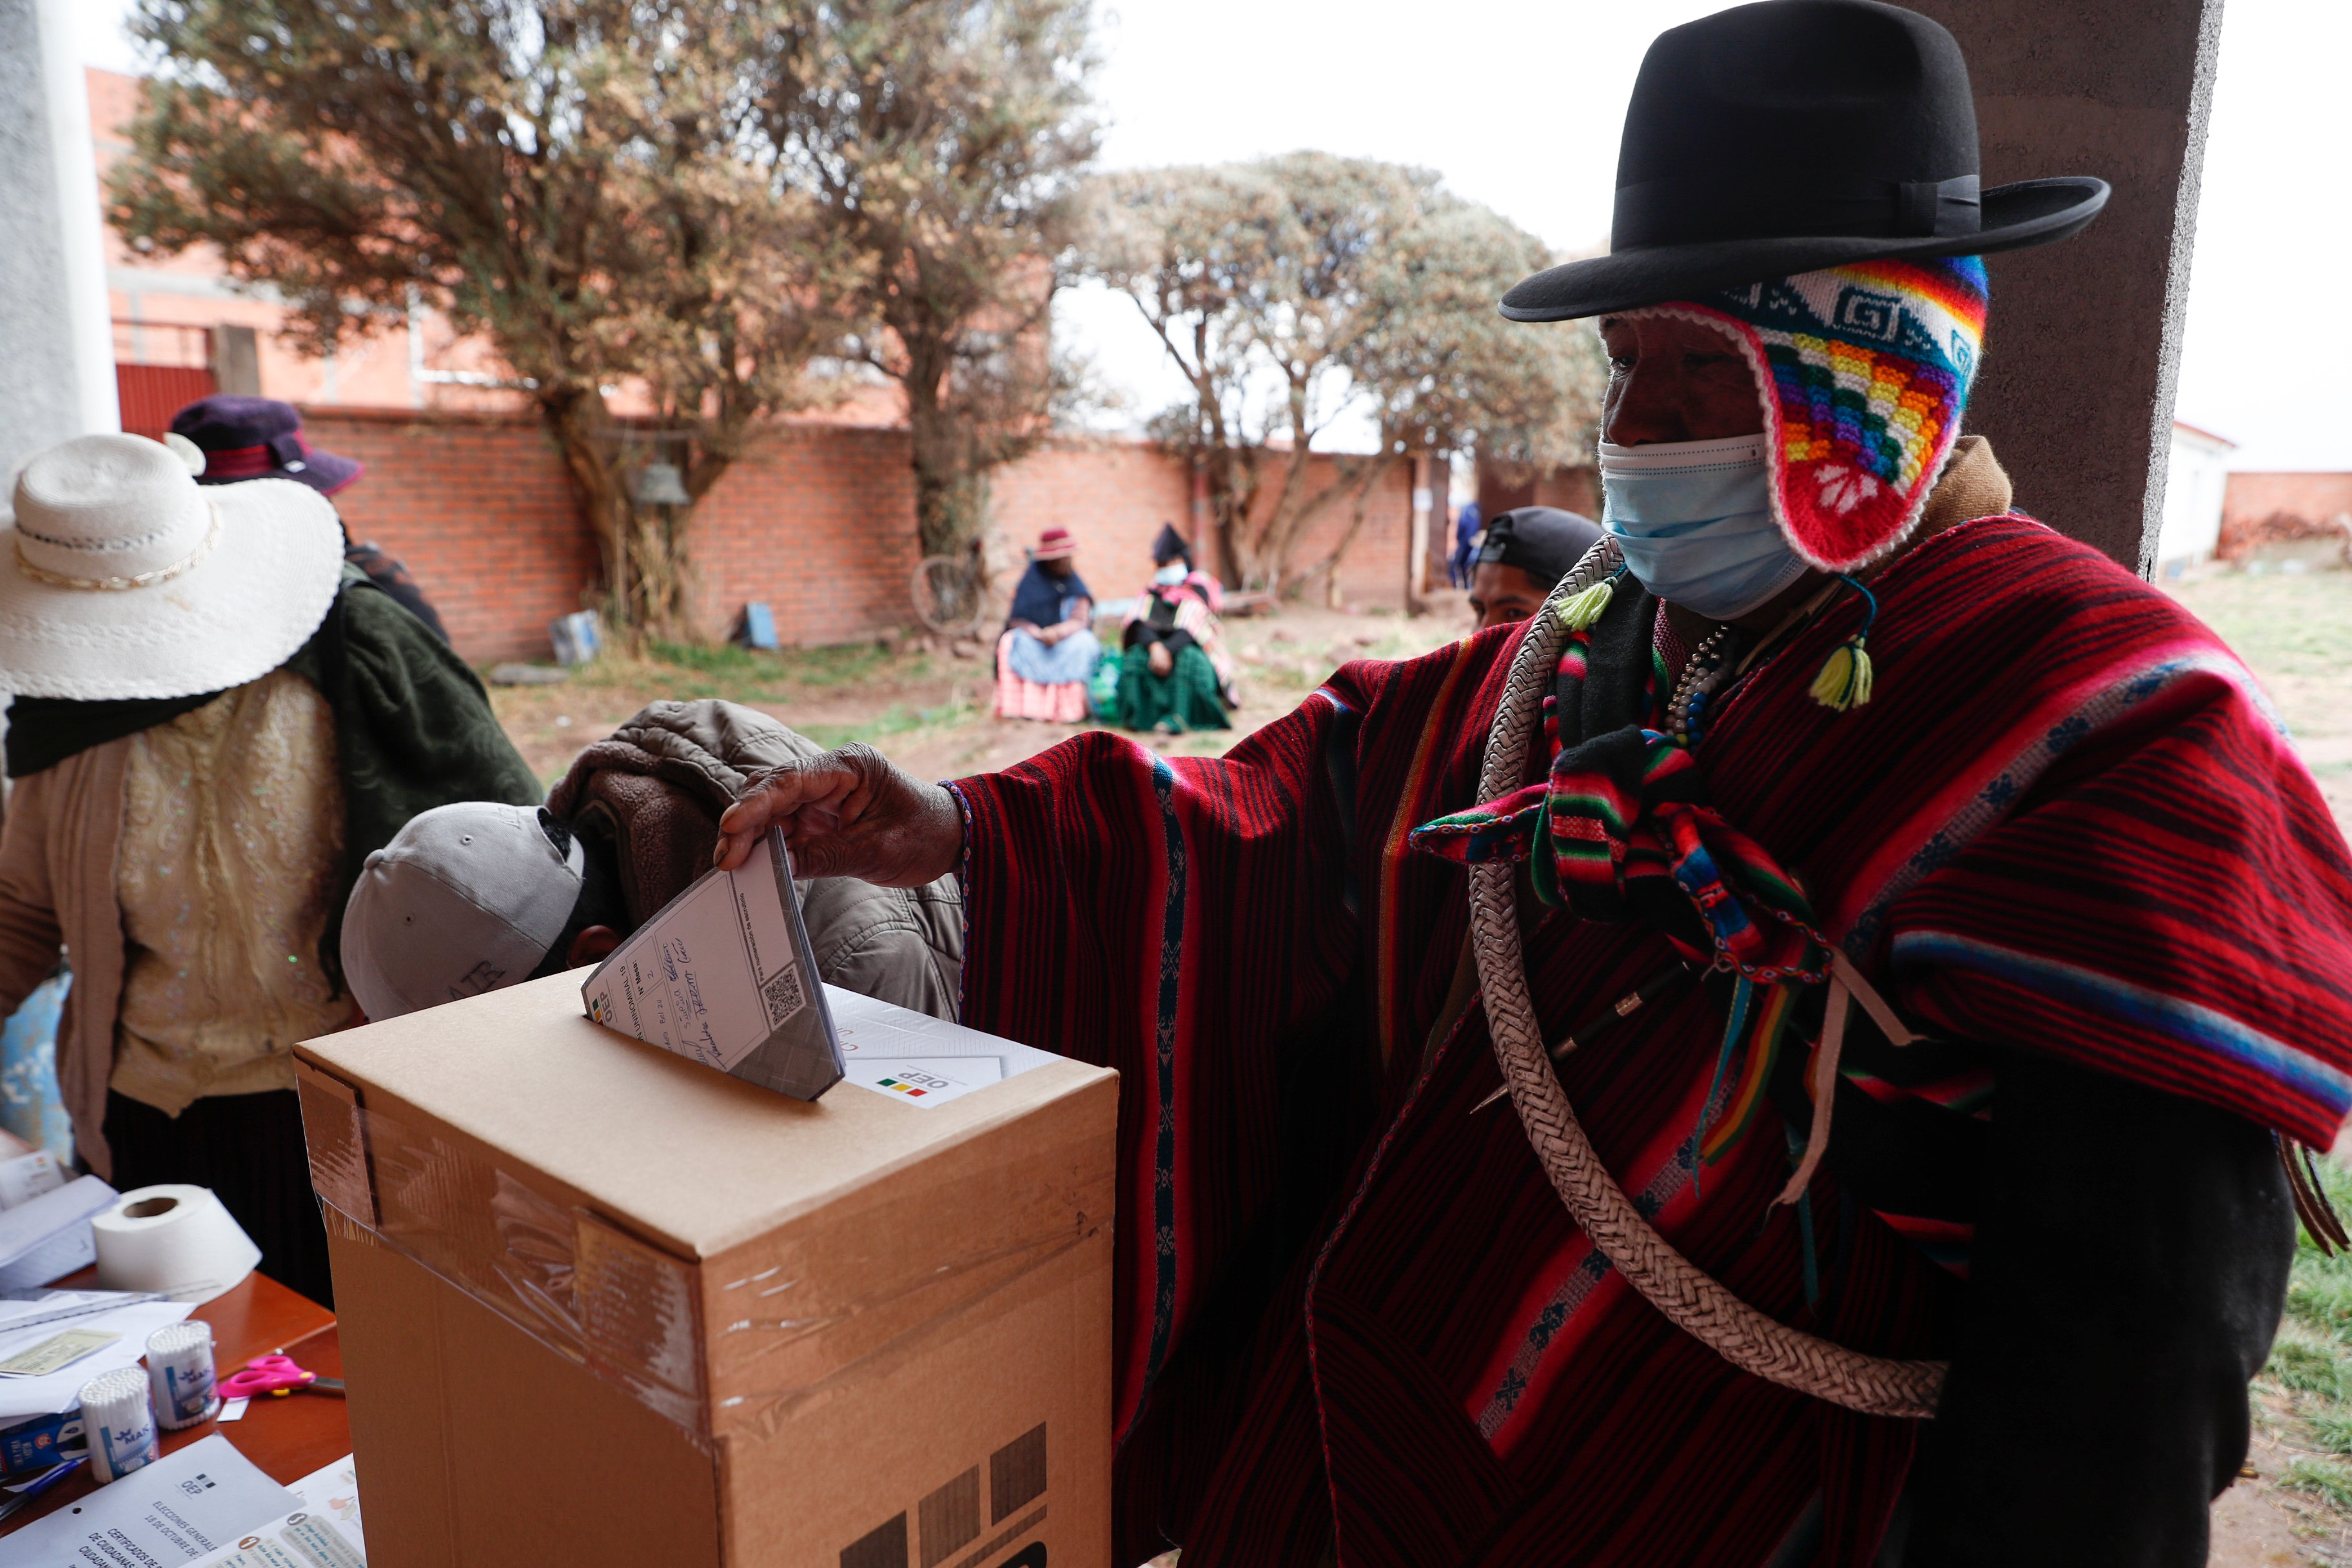 Bolivia awaits voting results in election redo amid pandemic